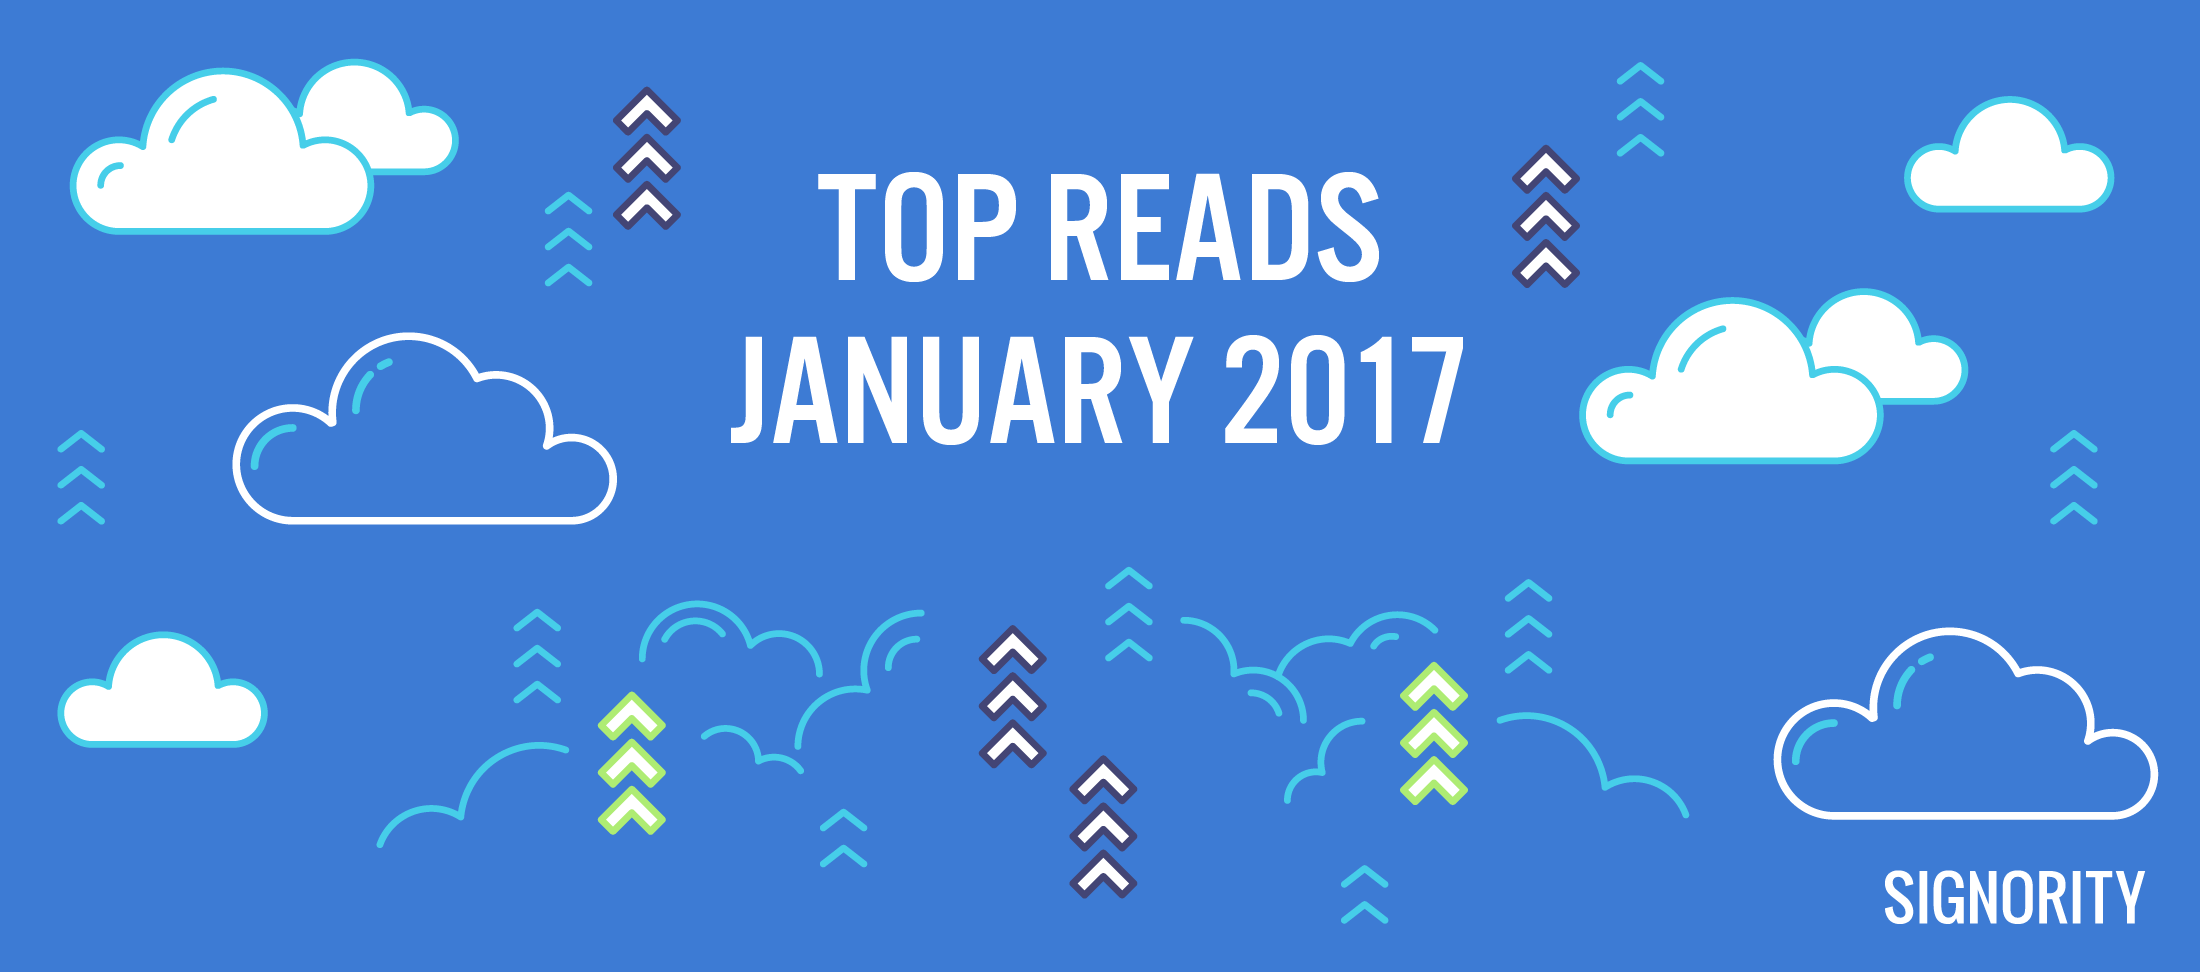 Top business growth reads - January 2017 Signority